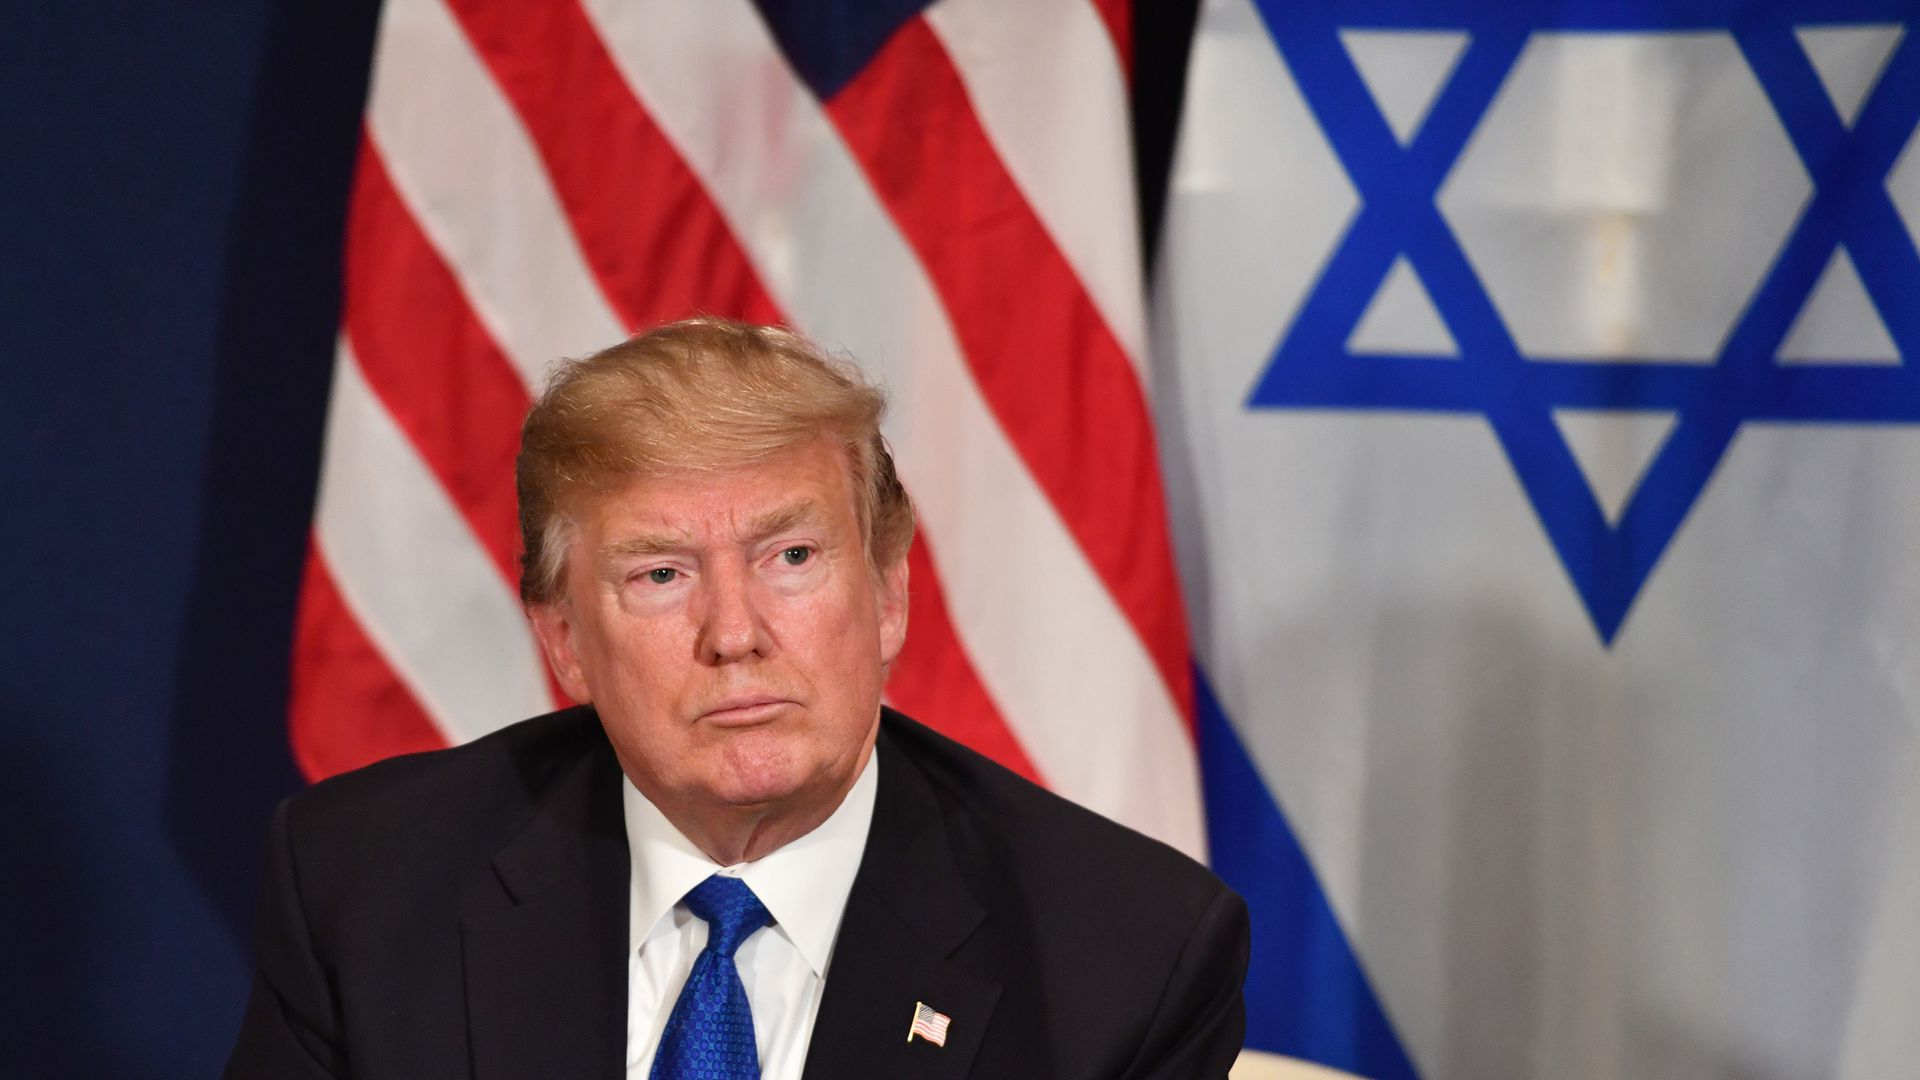 Trump with USA and Israel flags behind him